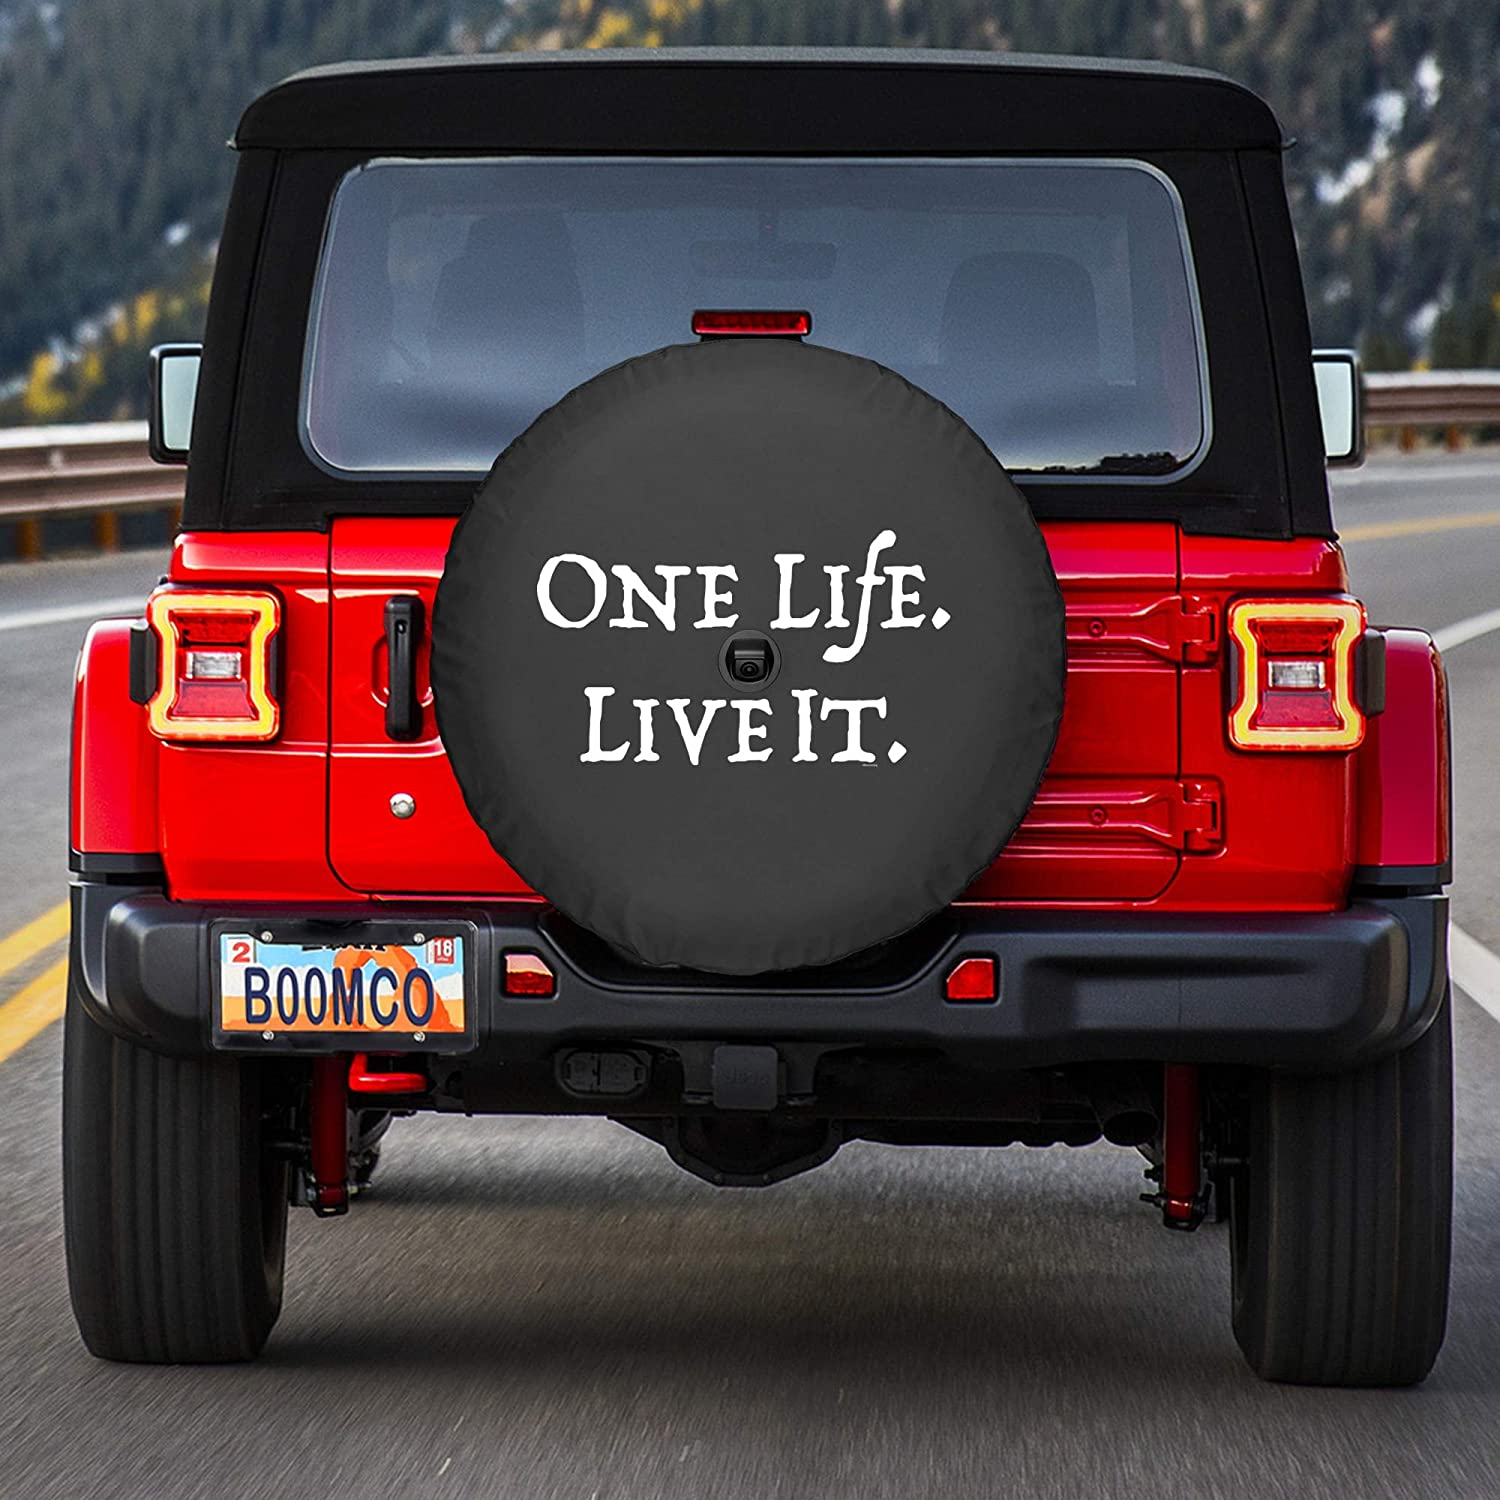 33 Soft JL Tire Cover for use with 2018-2019 Jeep Wrangler Rubicon JL with Back-up Camera Boomerang - One Life Live It